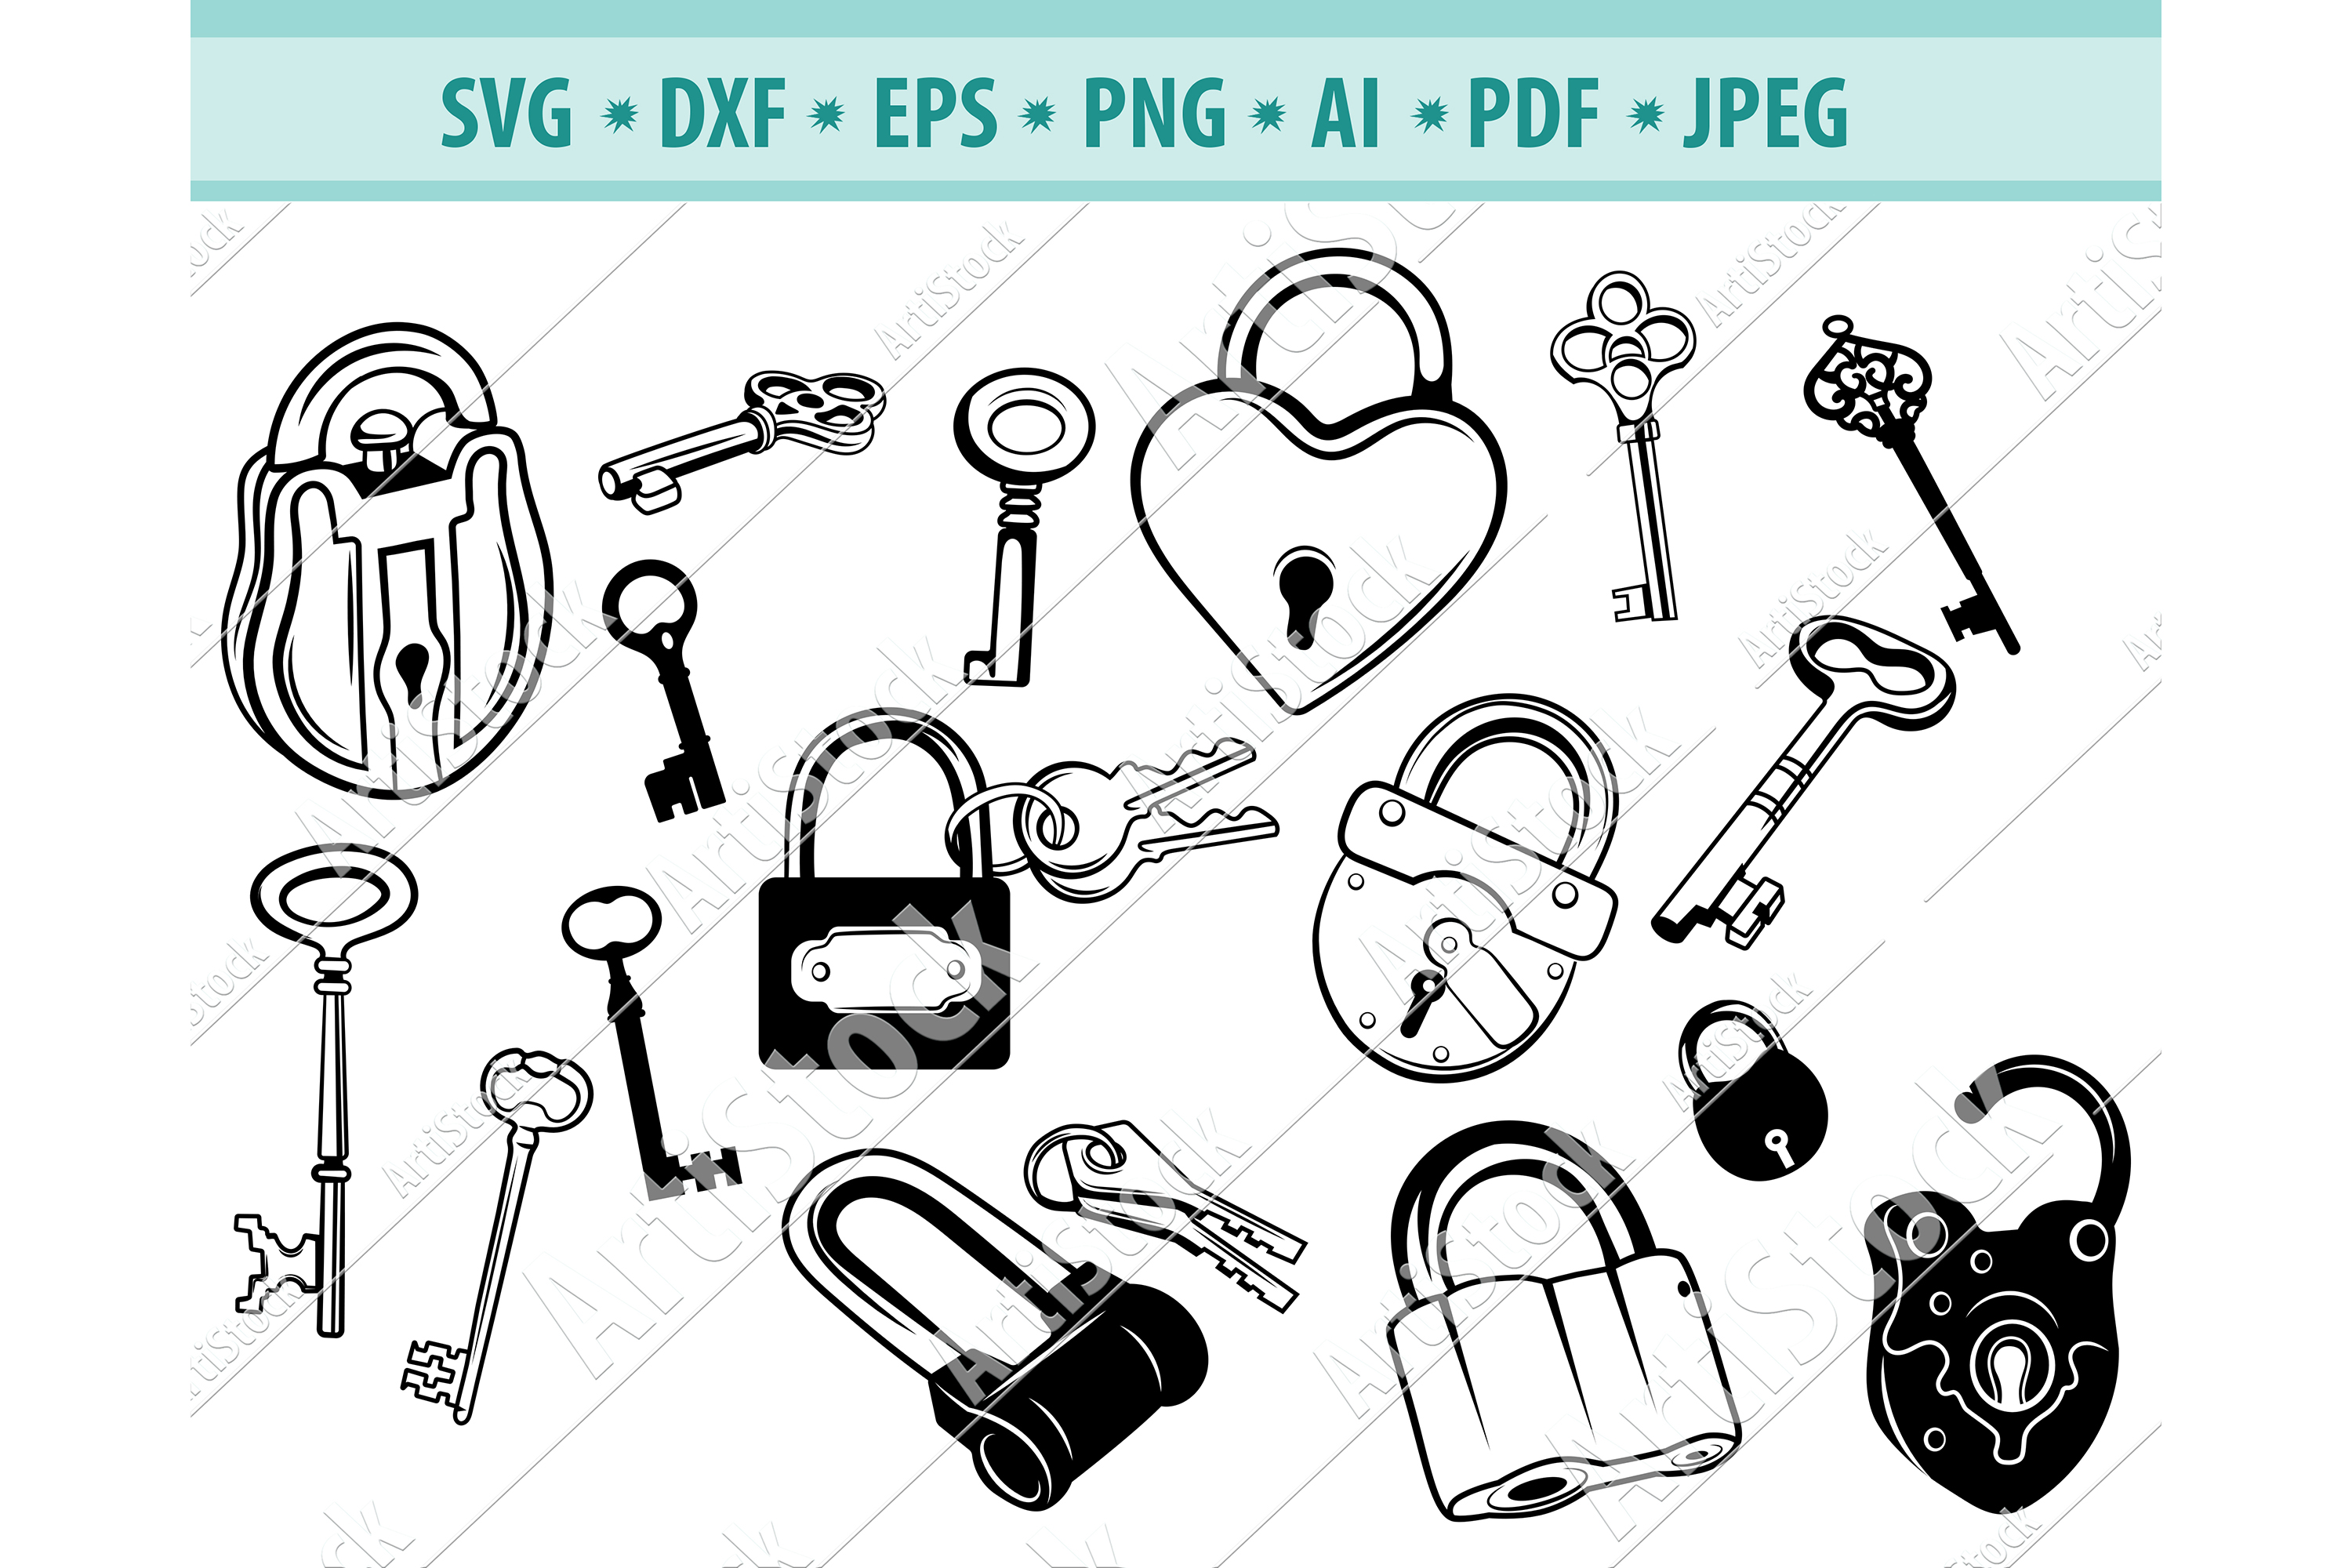 Lock svg, Key svg,Door key svg, Key Lock Svg, Dxf, Png, Eps example image 1